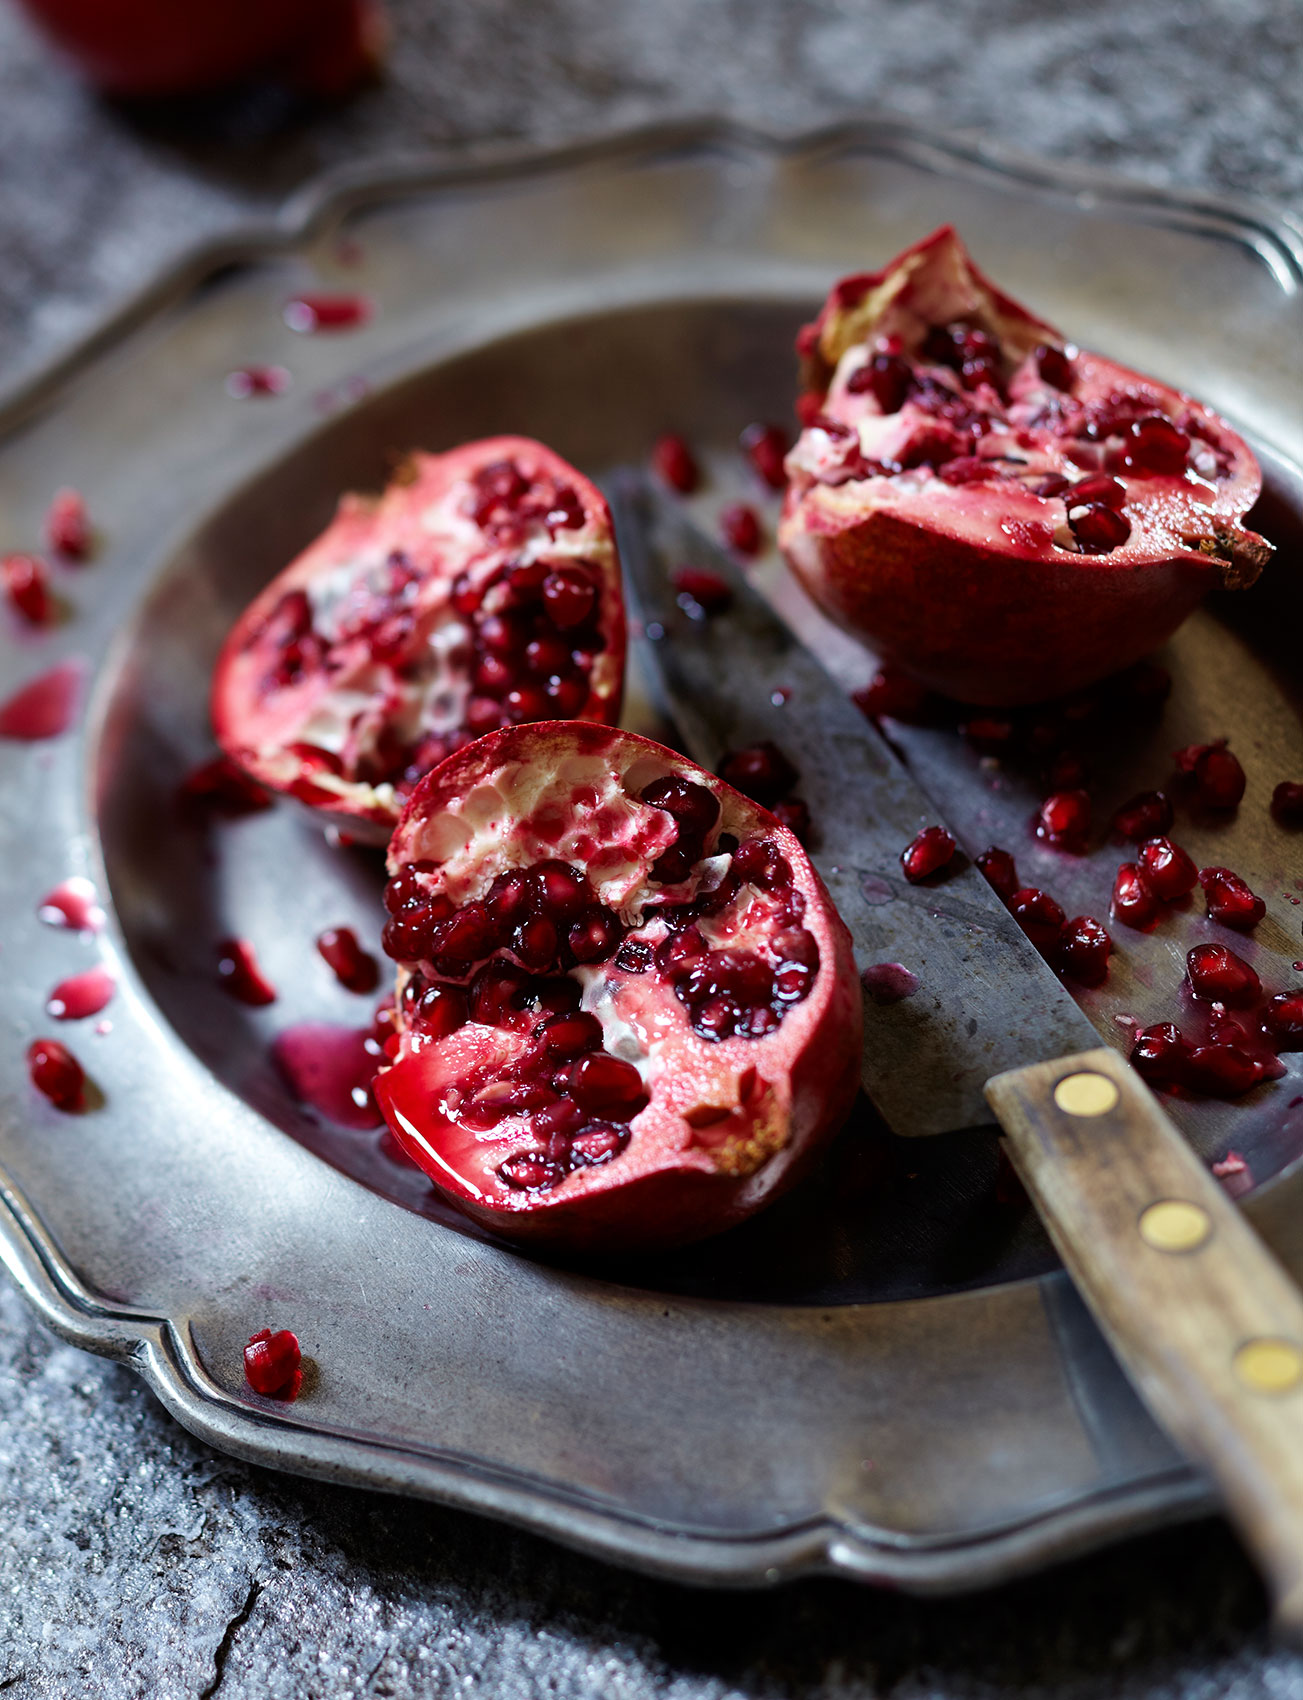 56_LL43_AL_Turkish_Pomegranate_01